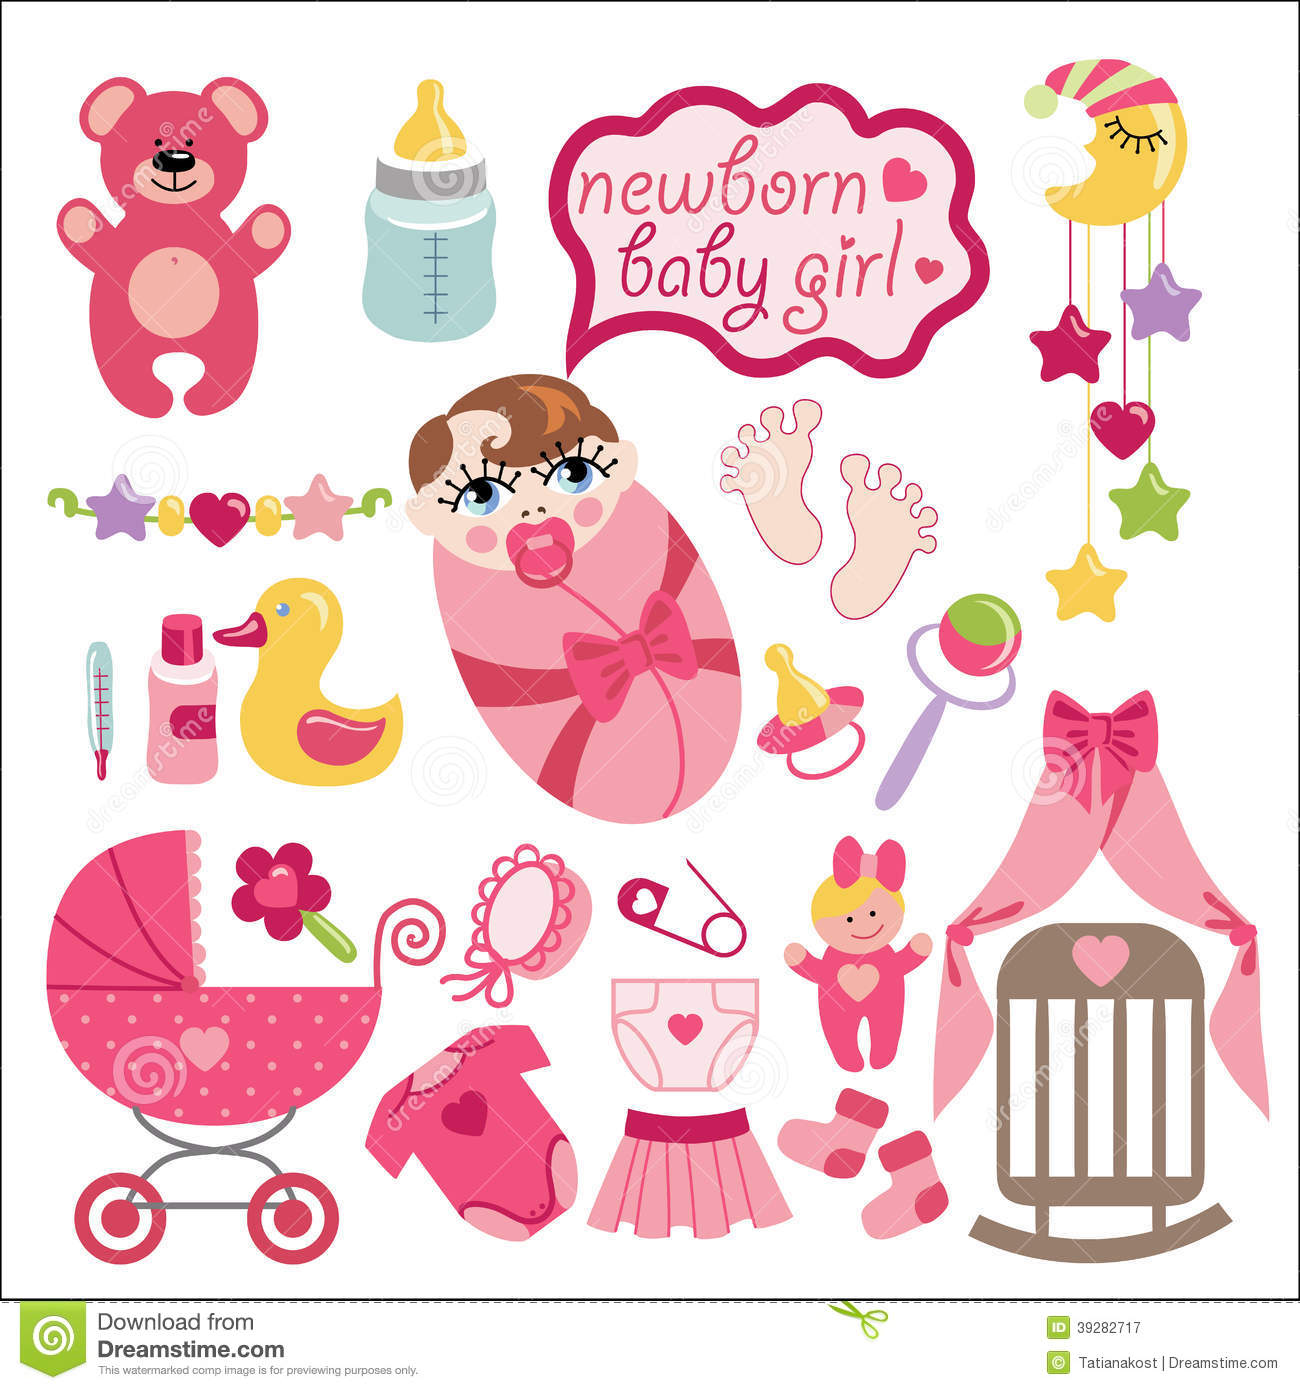 Cute Elements For Newborn Baby Girl Stock Vector Illustration Of Born Bonnet 39282717